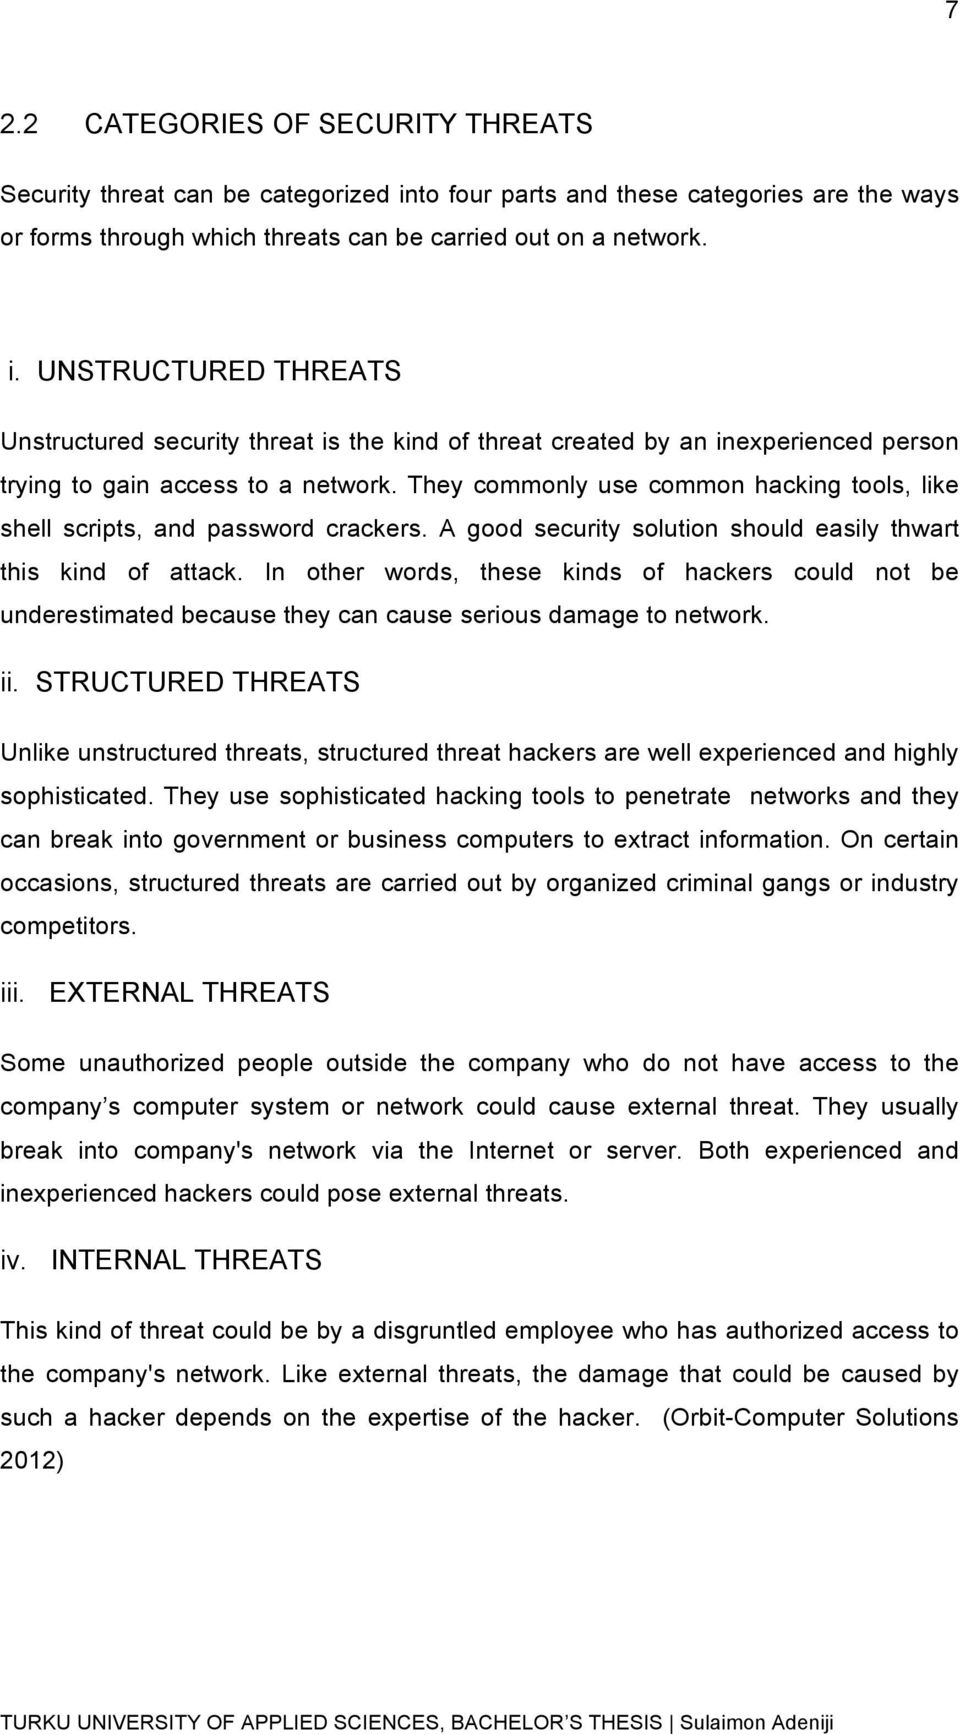 UNSTRUCTURED THREATS Unstructured security threat is the kind of threat created by an inexperienced person trying to gain access to a network.